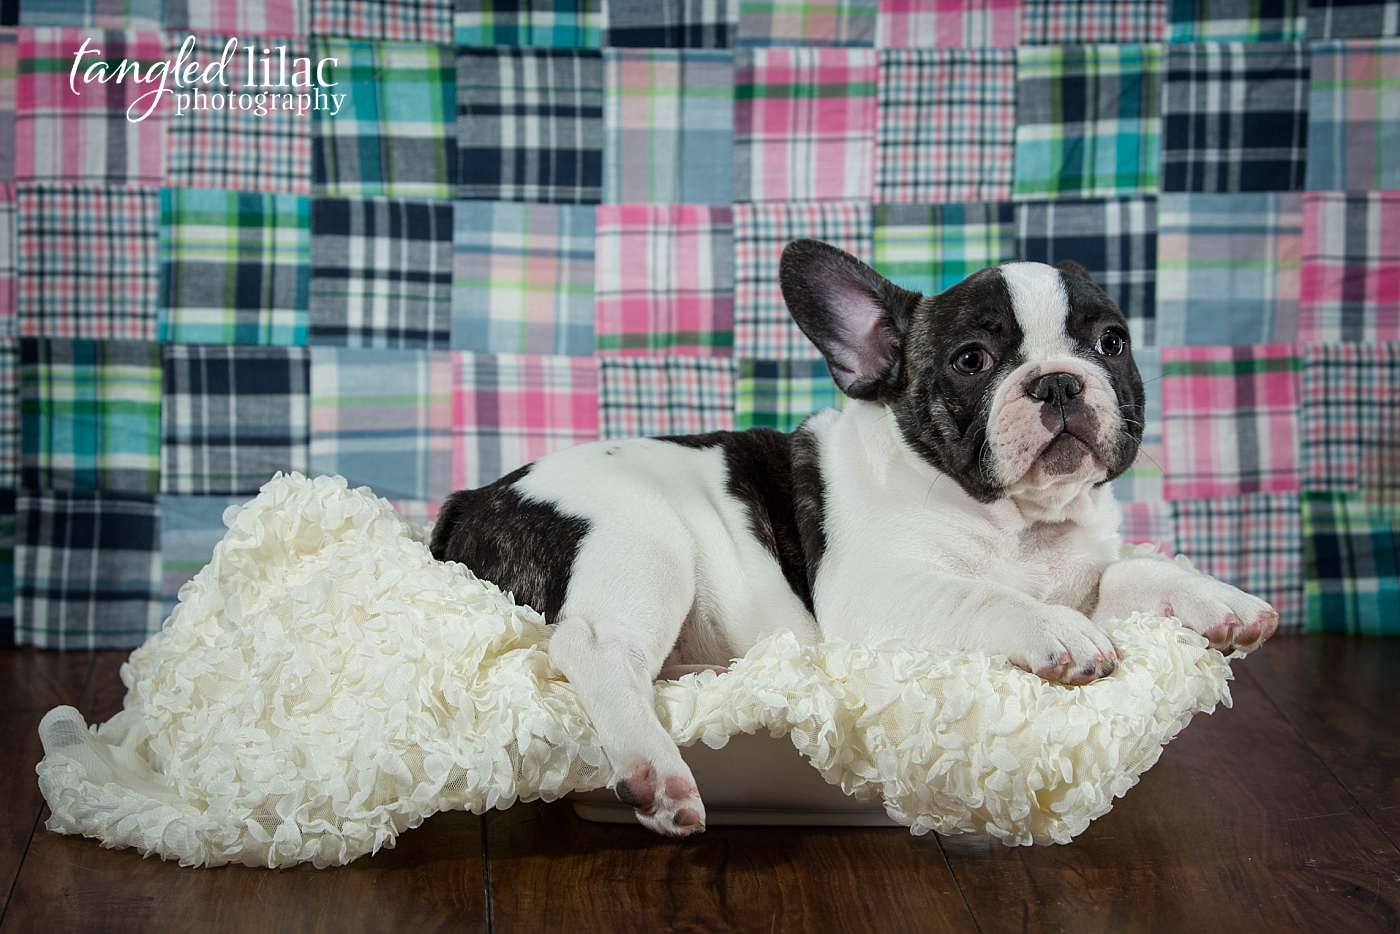 French bulldog puppy during a studio shoot in Los Angeles with plain backdrop and lace blanket